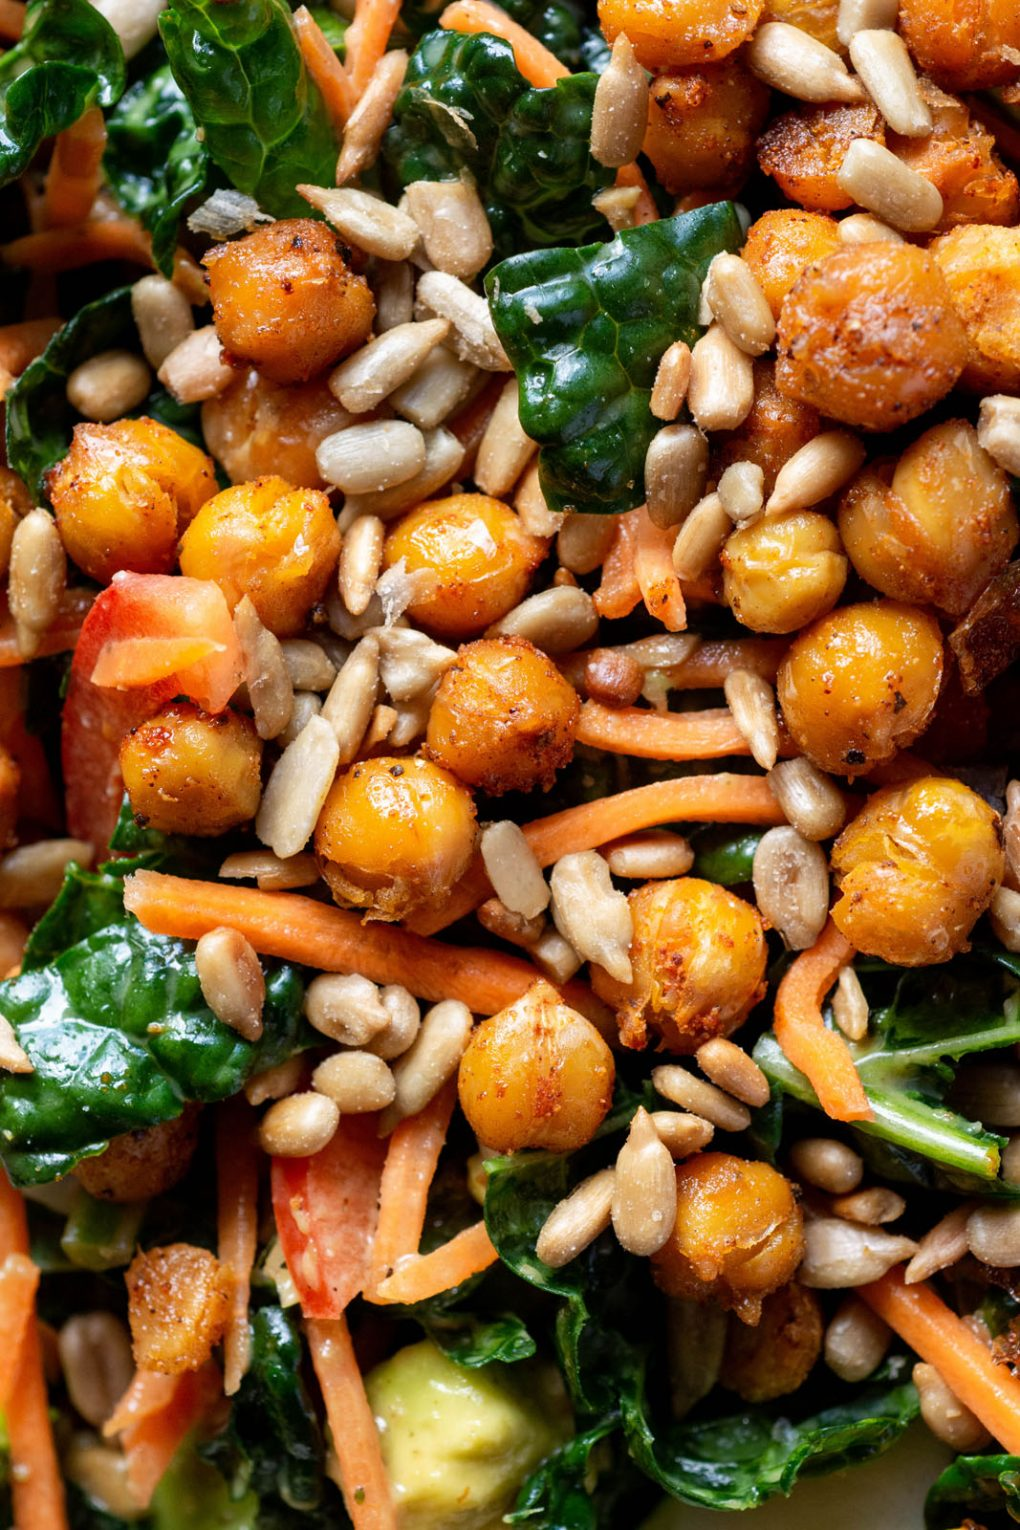 Super close up shot of chickpea and kale salad with shredded carrot and roasted sunflower seeds